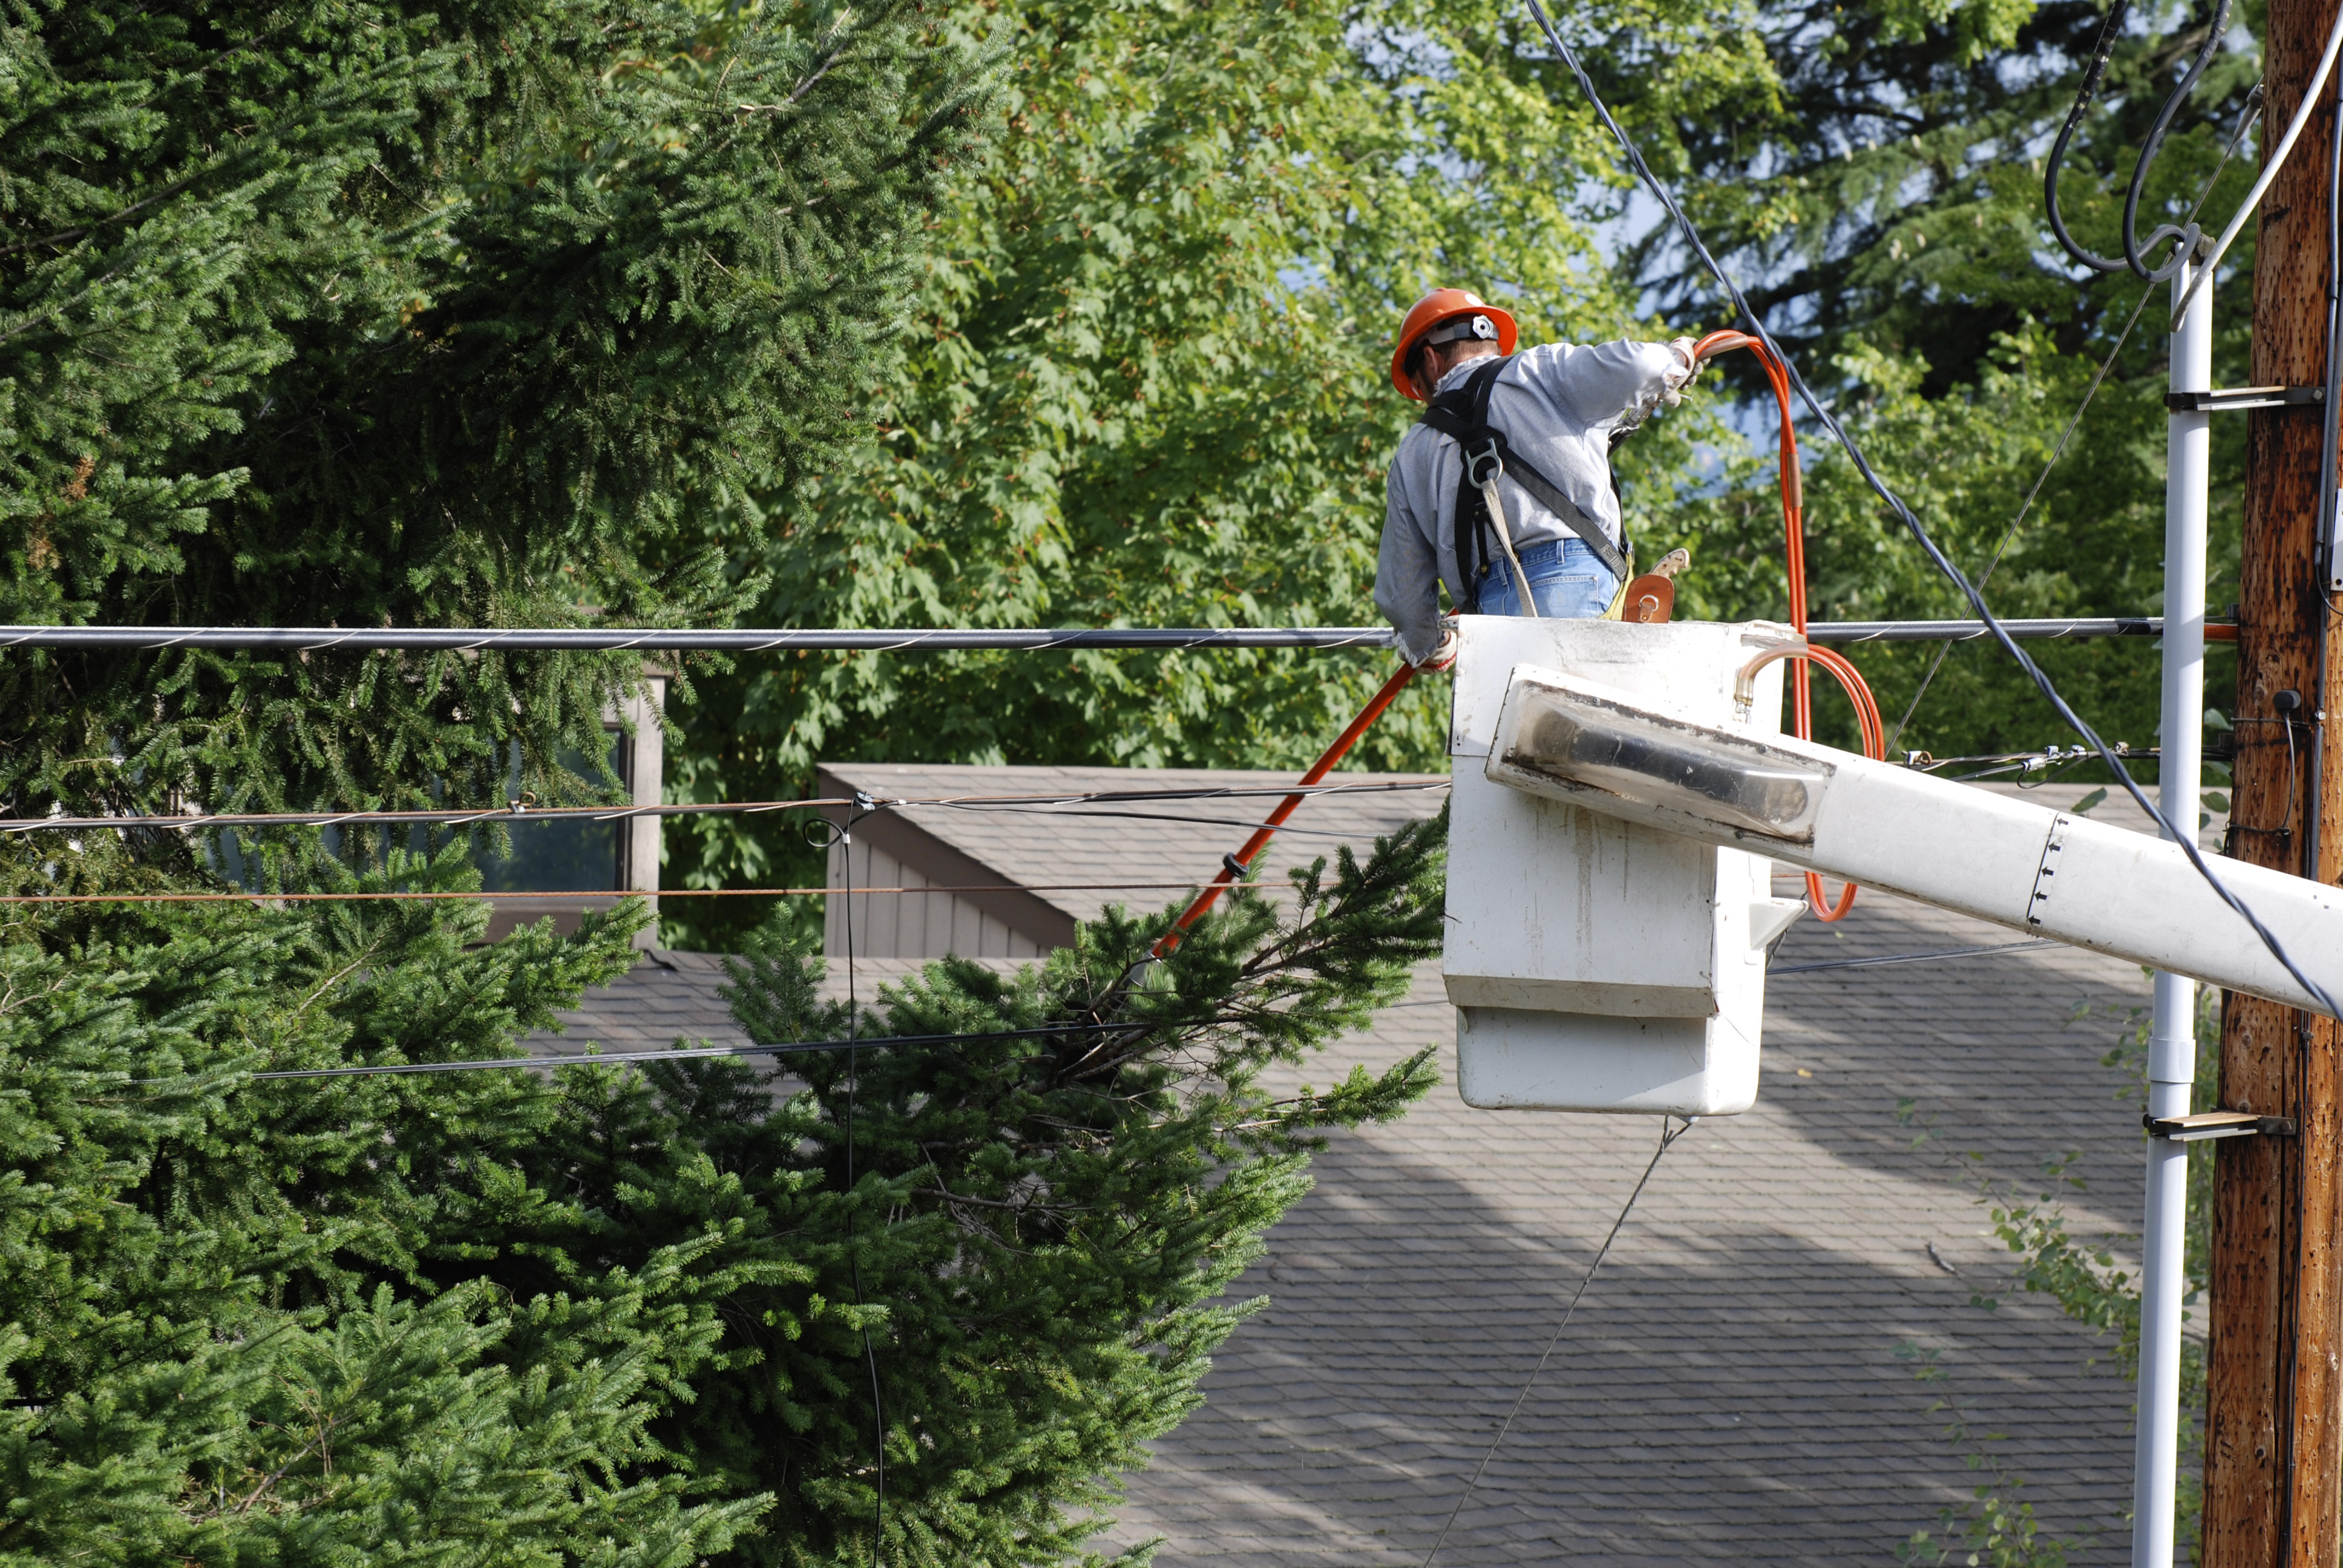 A man in a cherrypicker with an orange power saw, trimming evergreen branches